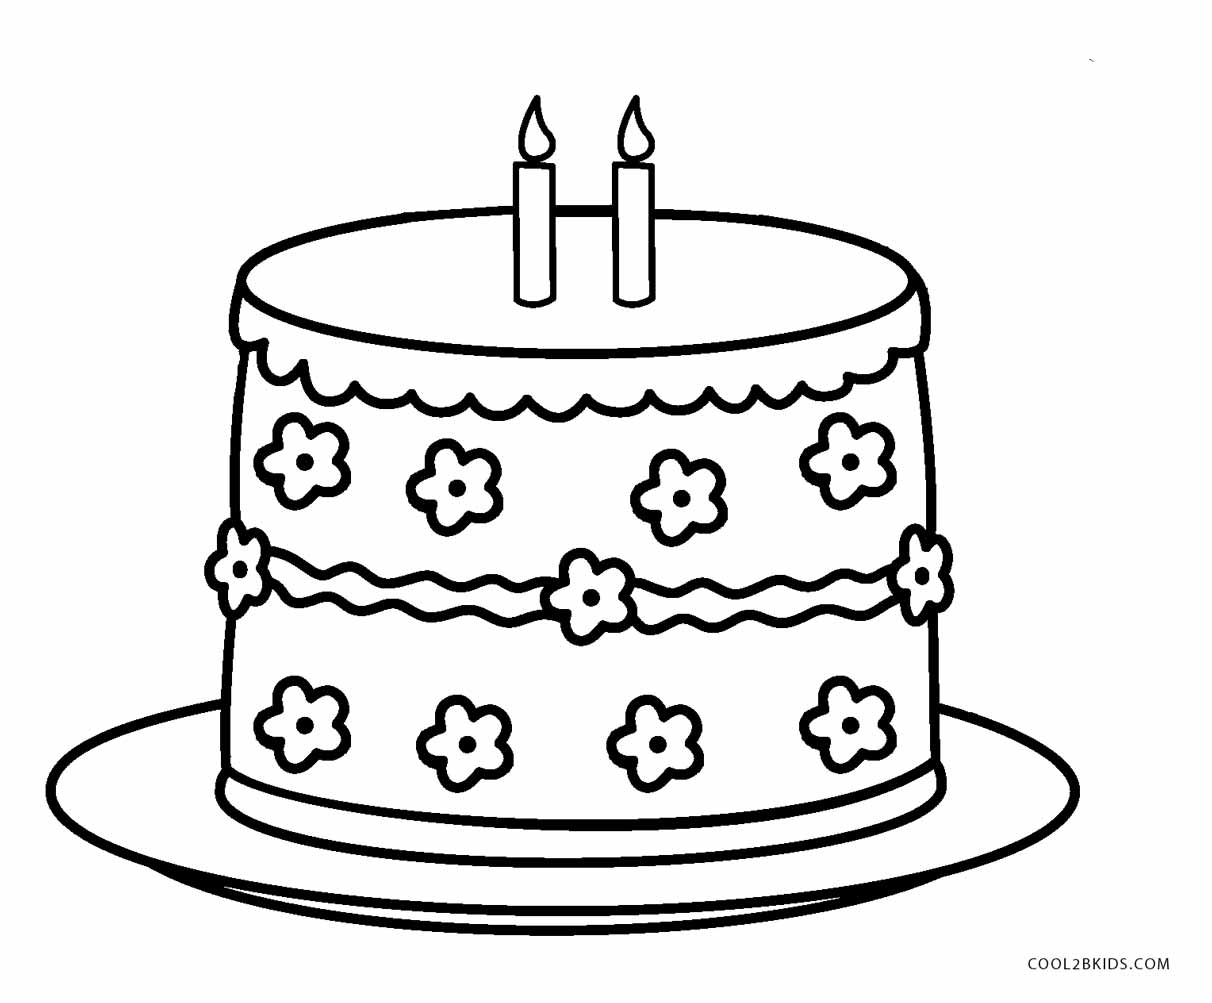 birthday cake coloring birthday cake coloring page at getcoloringscom free birthday coloring cake